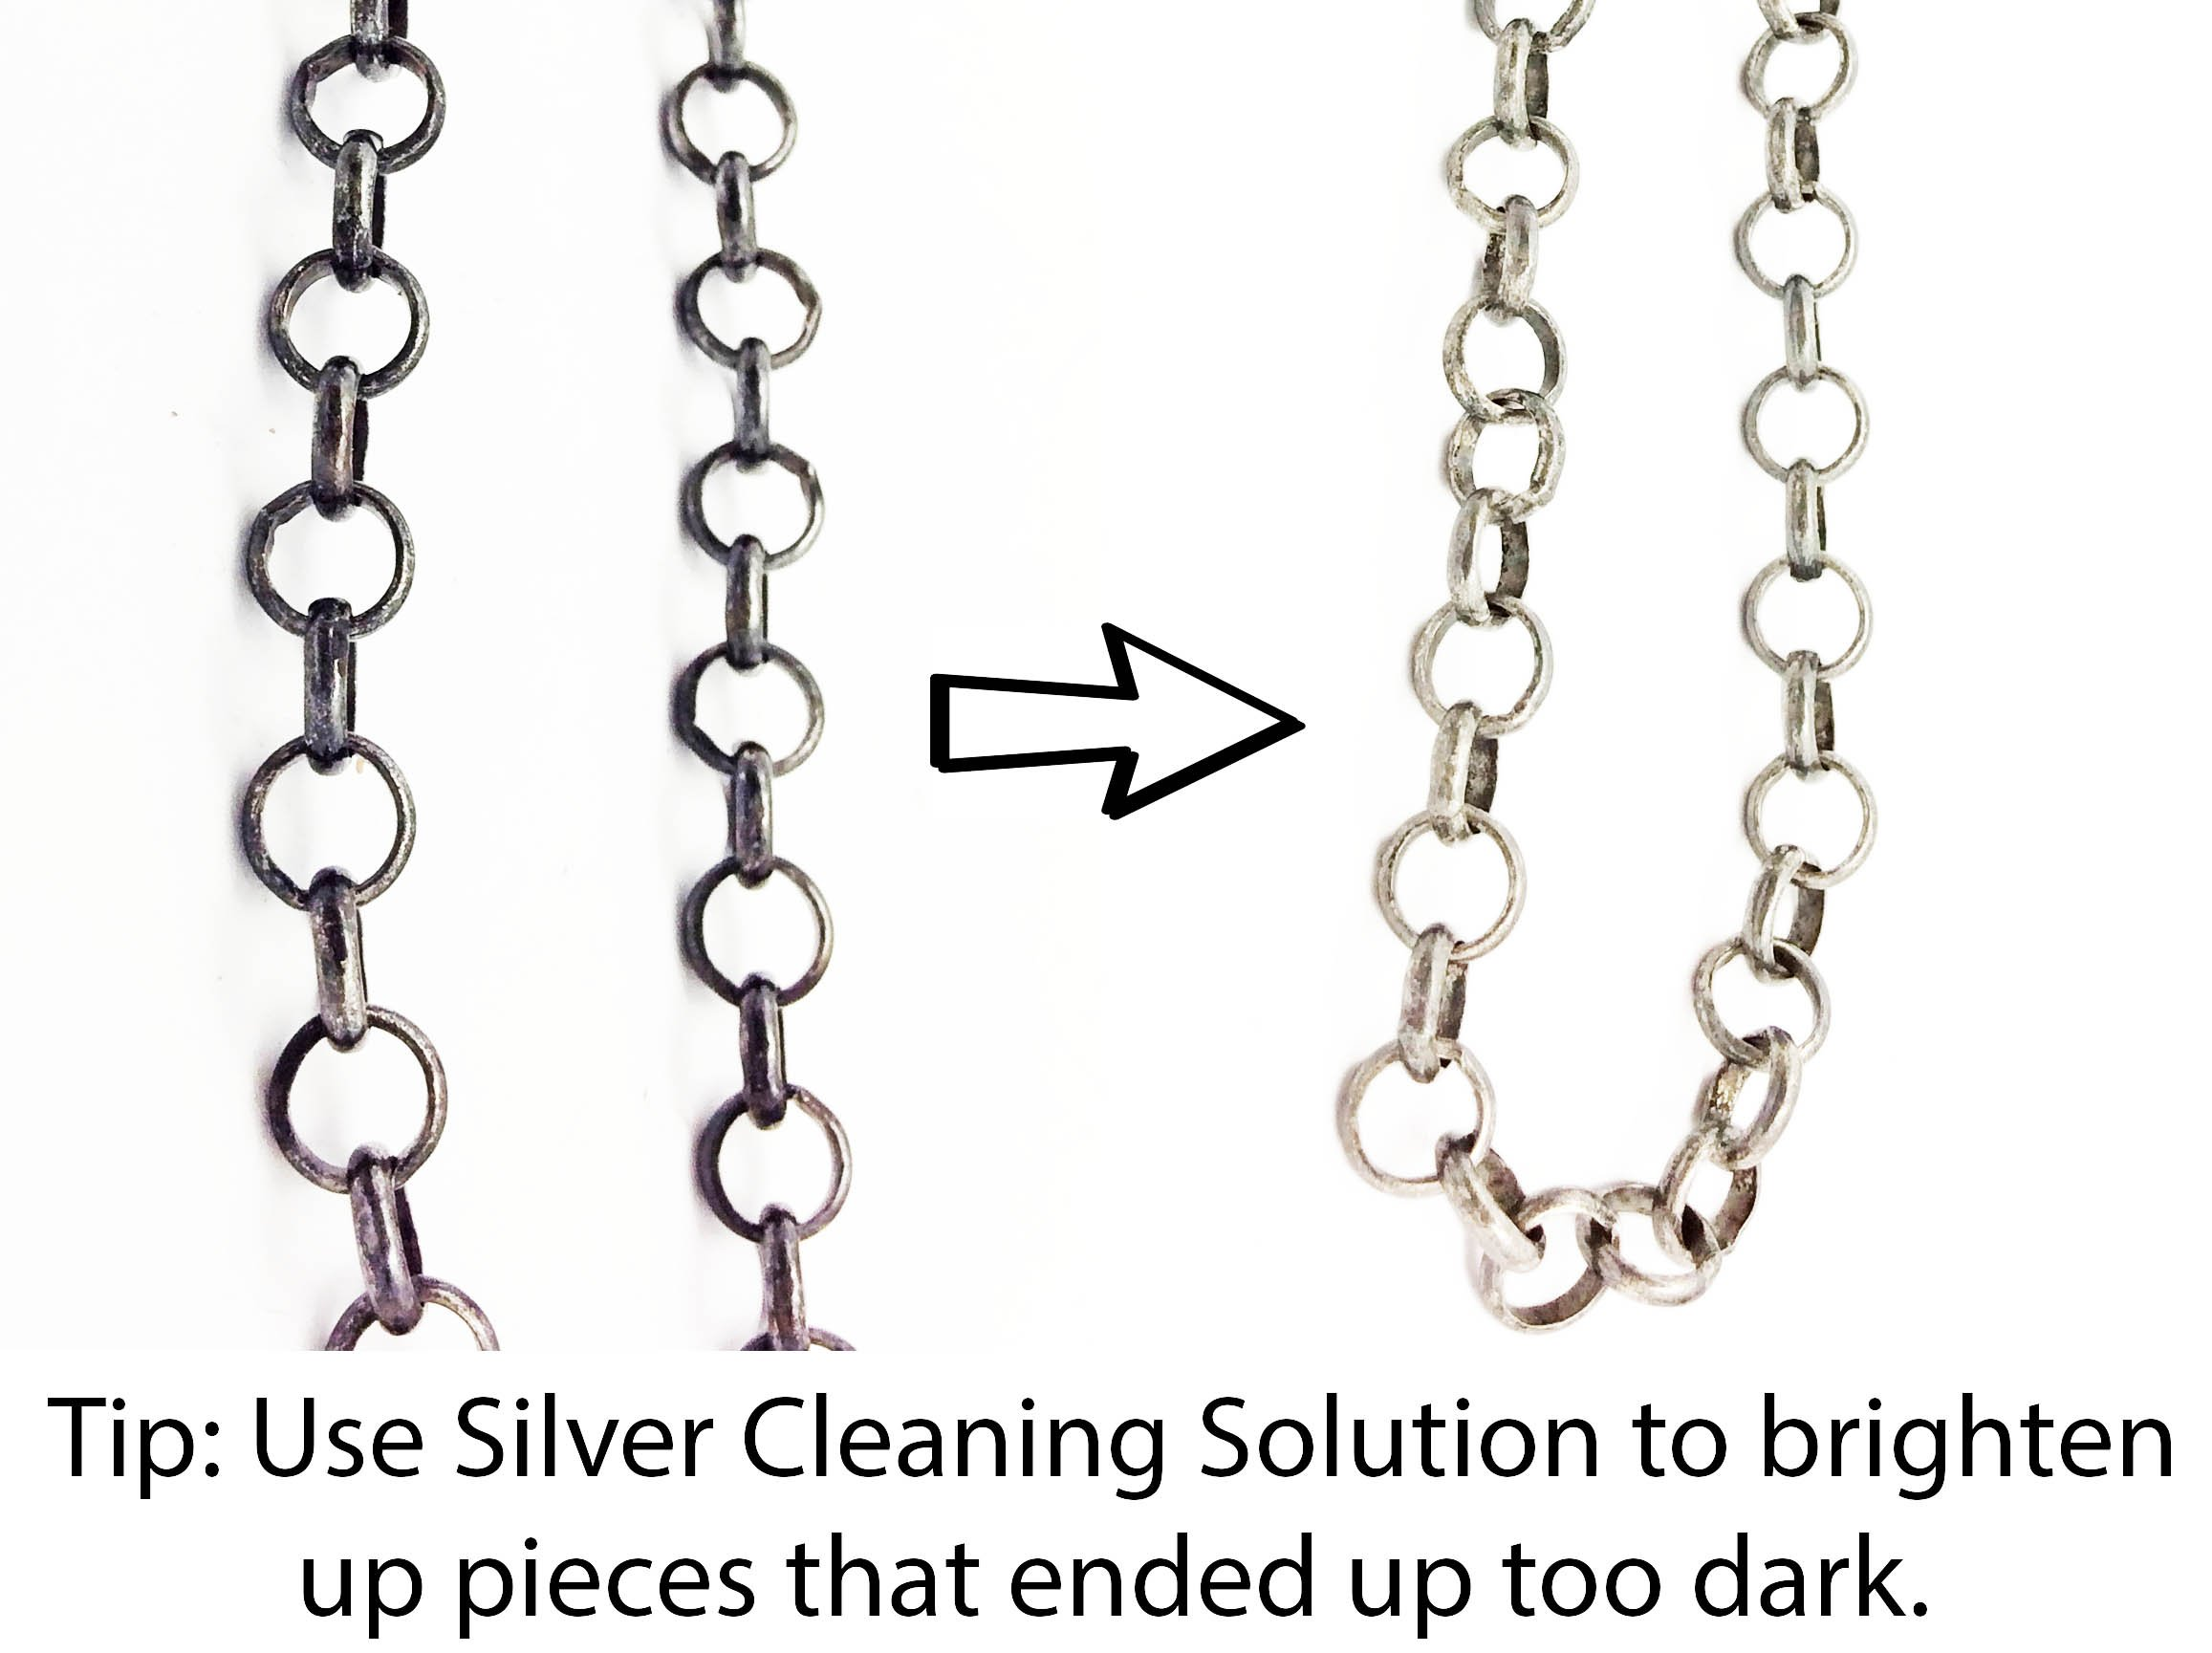 If your Silver got too dark, then you can put it in Silver cleaning liquid to brighten it up a little bit.